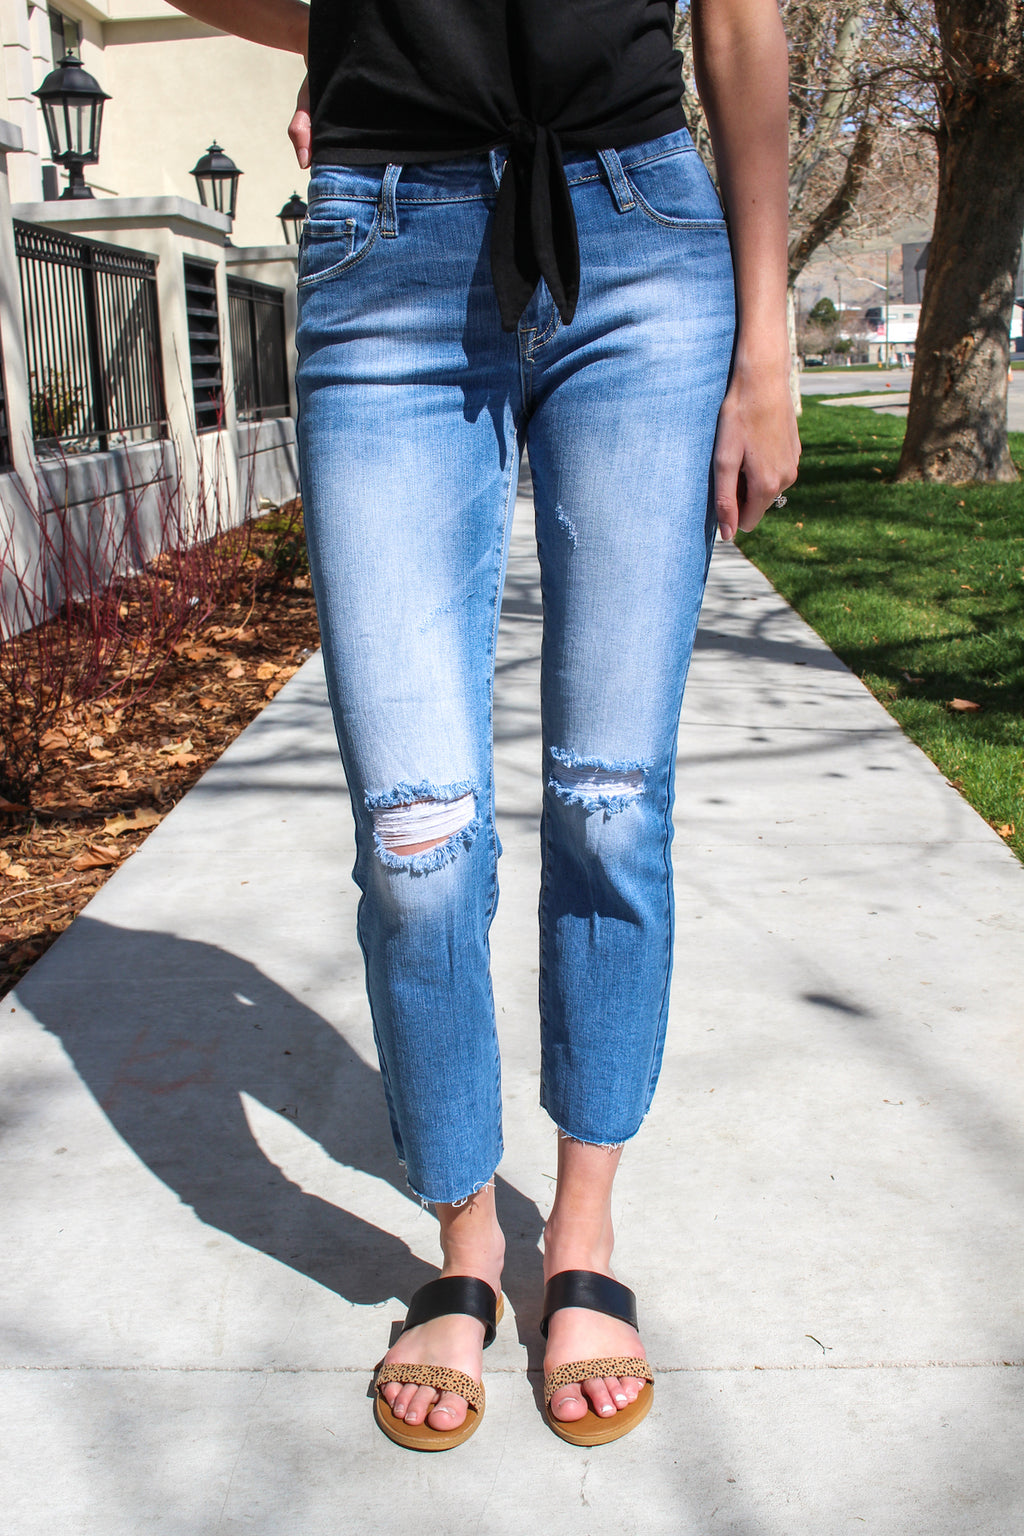 "Special A Jeans  Straight crops are all the rage right now and these are the perfect fit. Pair with your favorite flats and blouse for a dressed up casual look. Collection: Spring 2020 Color: Medium Wash Material: 98% COTTON, 2% SPANDEX Cut: Crop Straight, 27"" Inseam Rise: Mid Rise, 8.5"" Front Rise Style #: IP2781-SA Contact us for any additional measurements or sizing.   Mckenna is 5'10"" and 122 pounds. She wears a size small top, a 3 in jeans and a size 8.5 in shoes. She is wearing a 3 in these jeans."